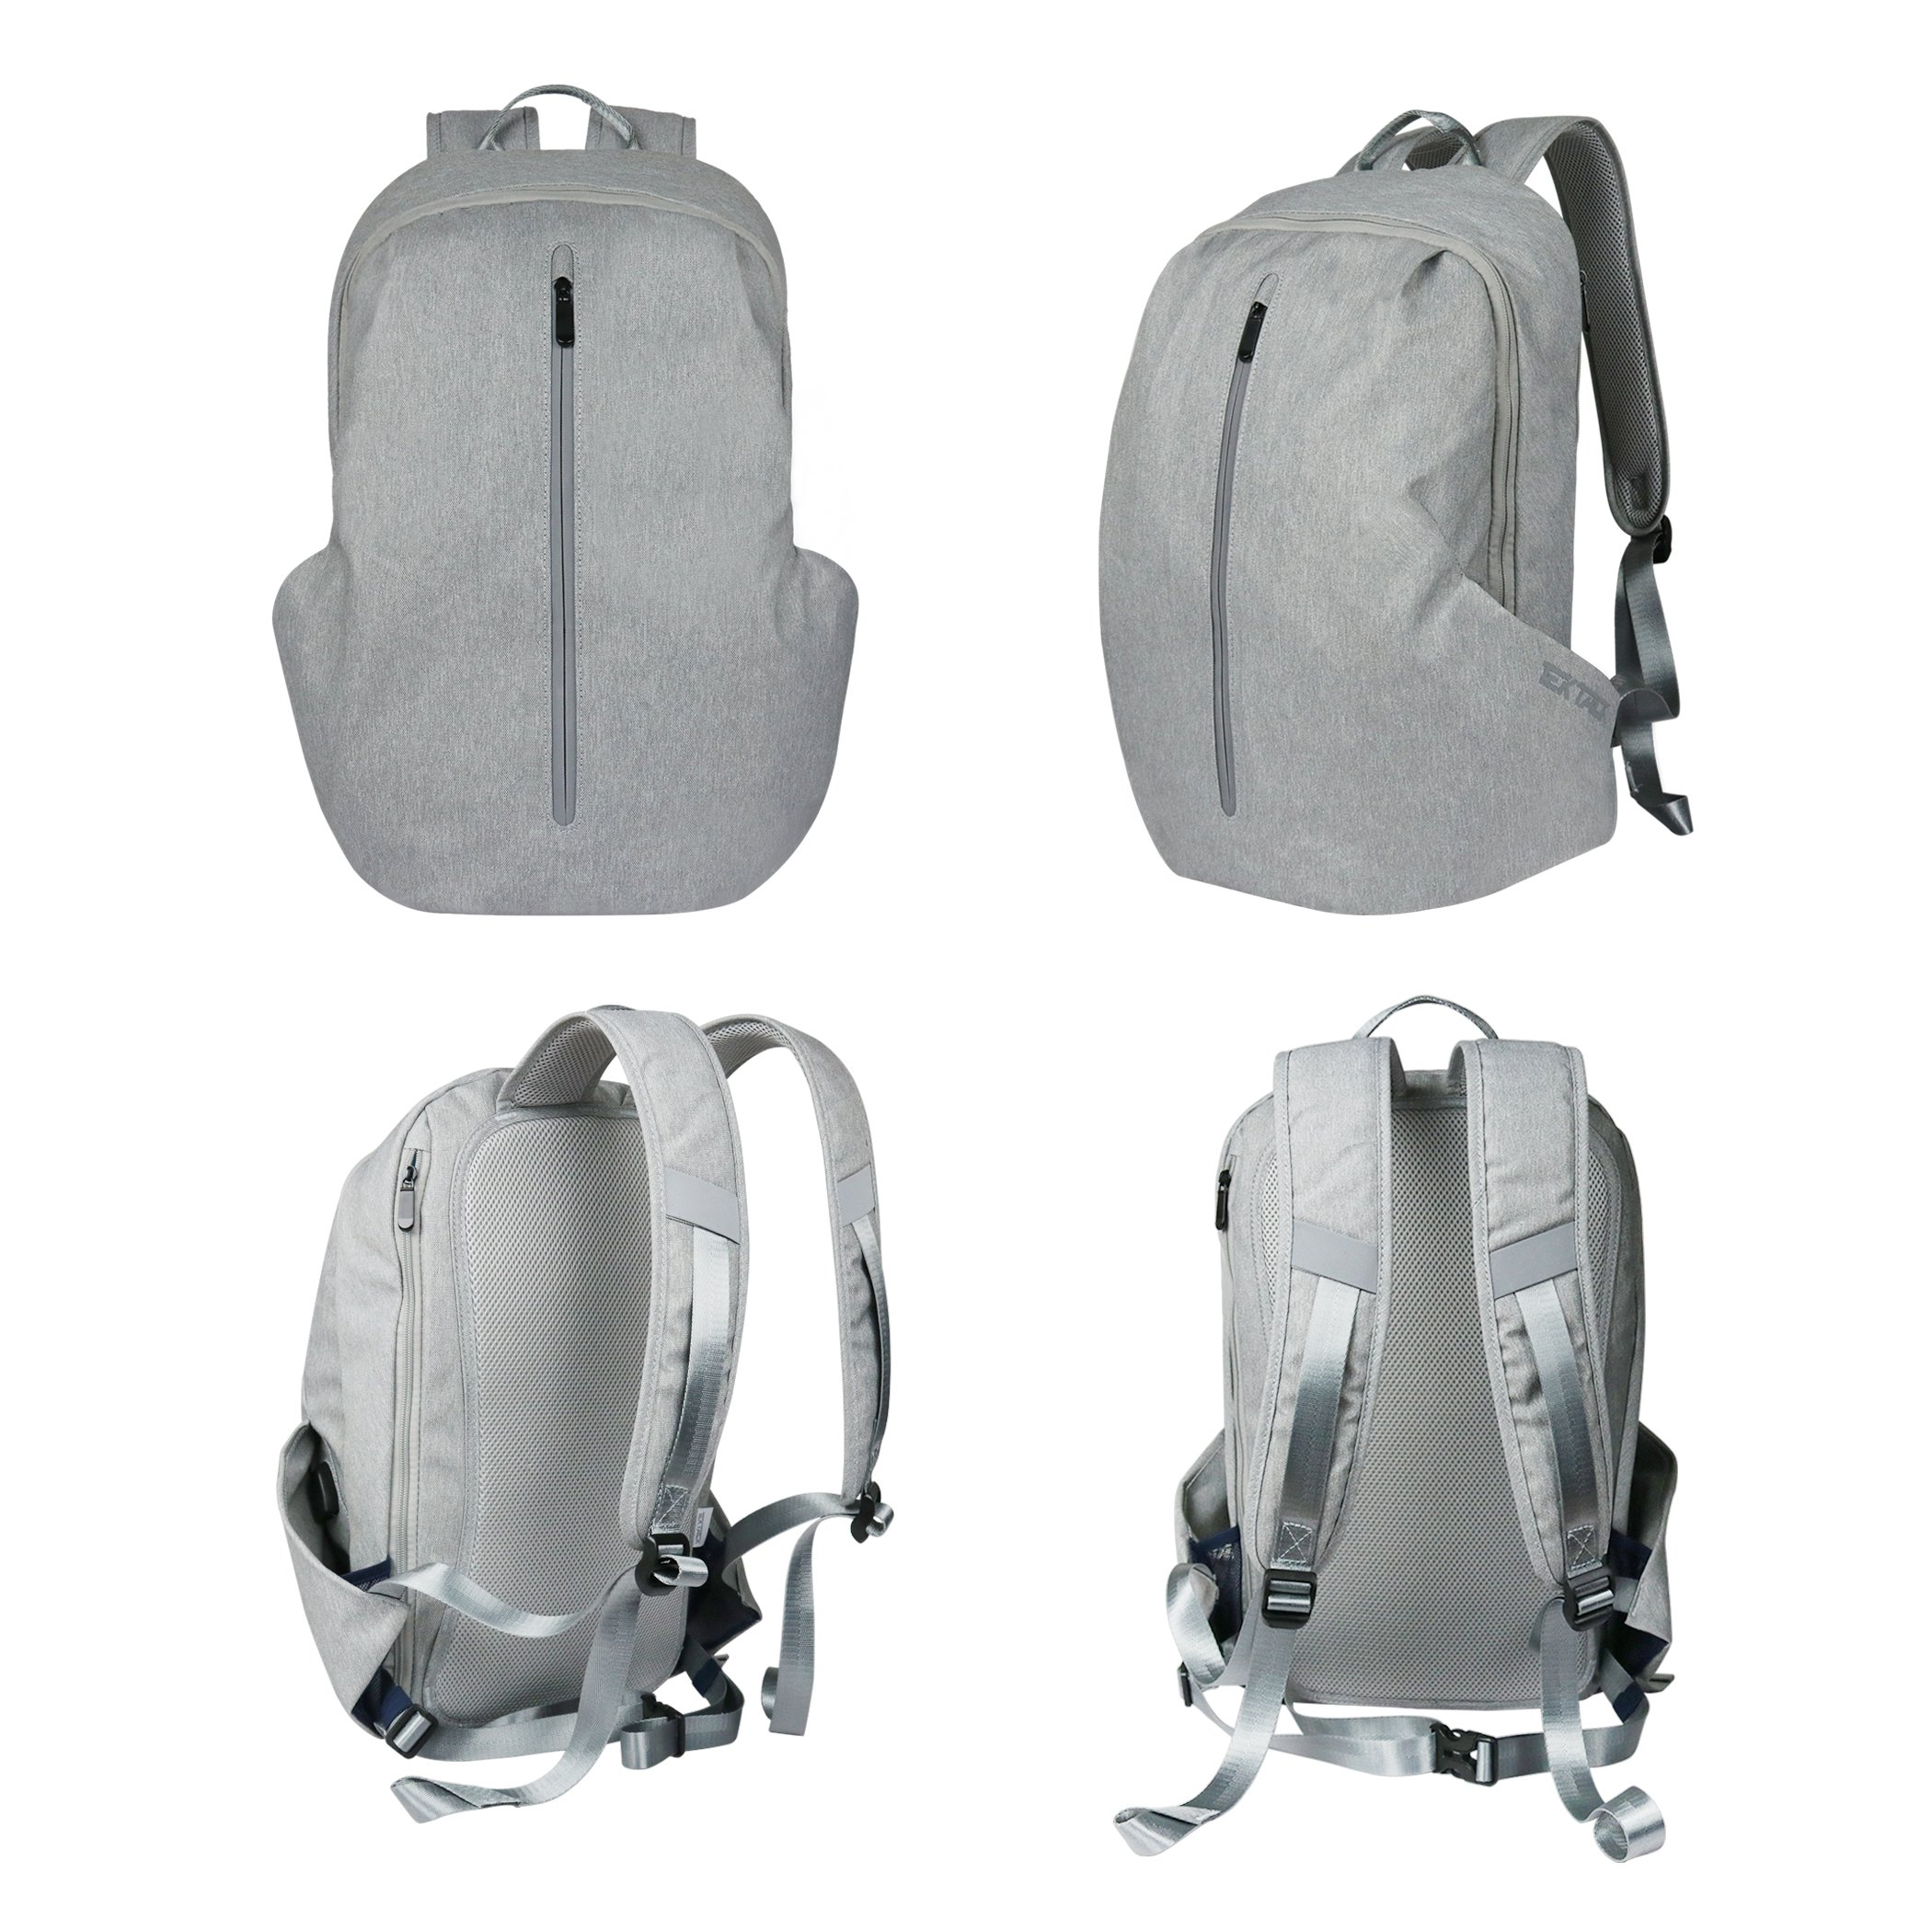 Tektalk Business Anti-theft Multifunctional Laptop Backpack, with USB Cable and Coded Lock, Durable & Lightweight, Suitable for Laptops up to 15.6 inches, for School / Travel / Work (Light Gray) by Tektalk (Image #2)